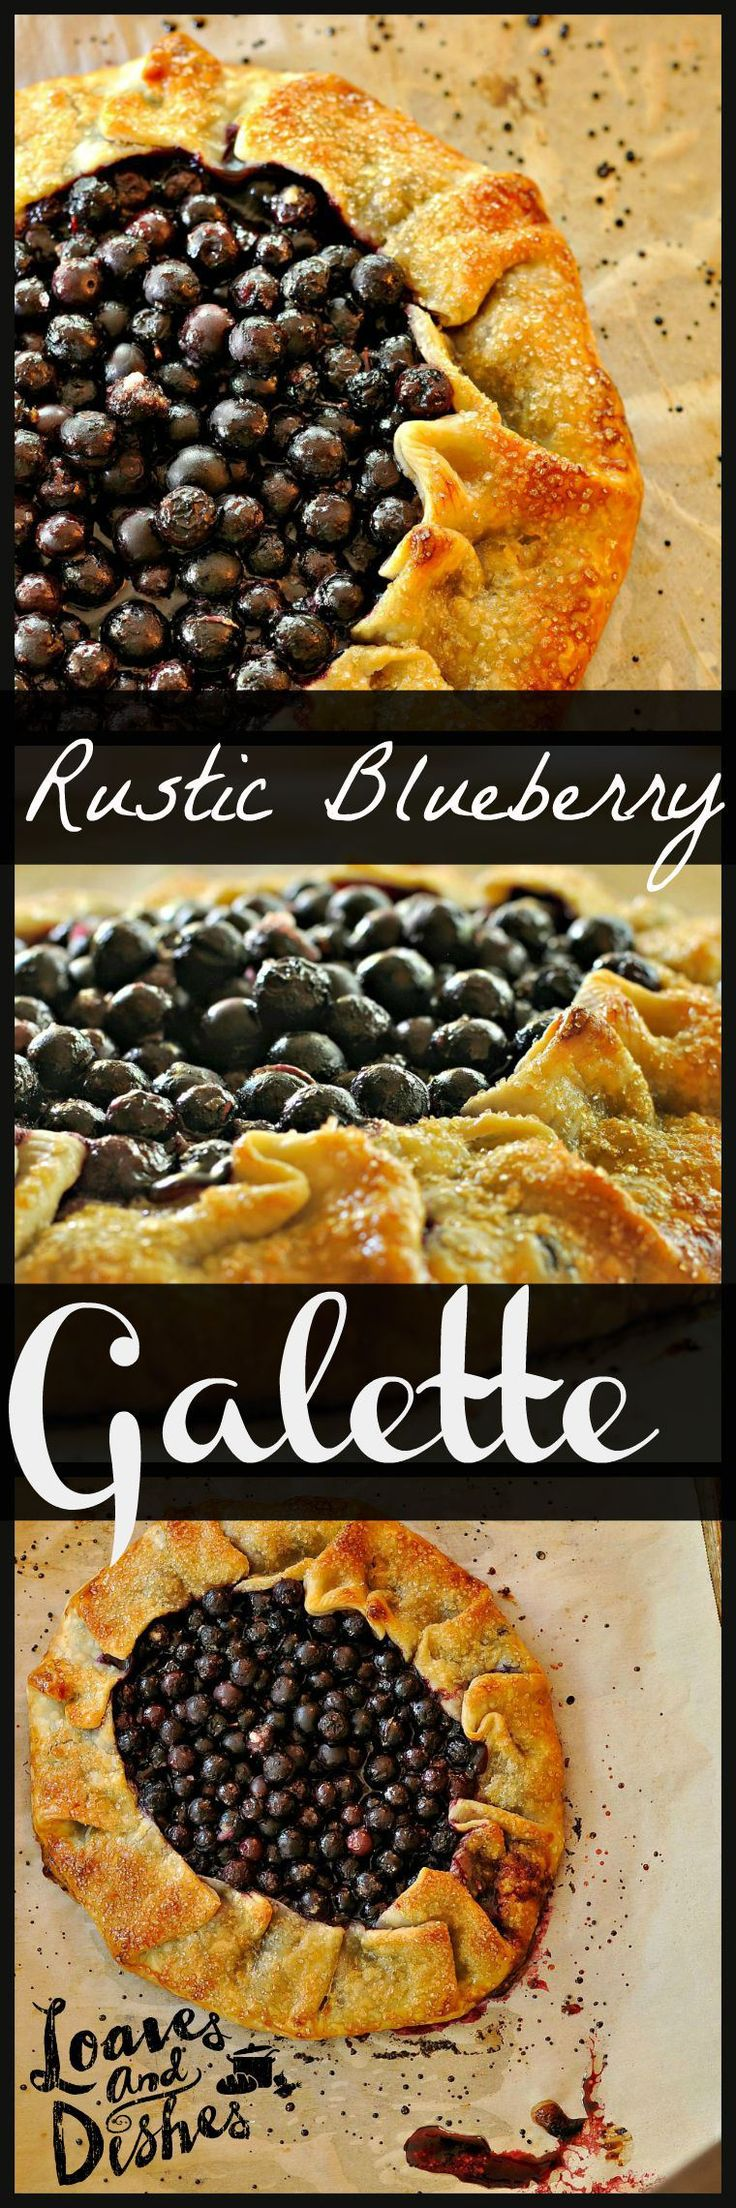 Need an OH SO EASY dessert that is BEAUTIFUL?  Try this Rustic Blueberry Galette. Complete instructions @loavesanddishes.net